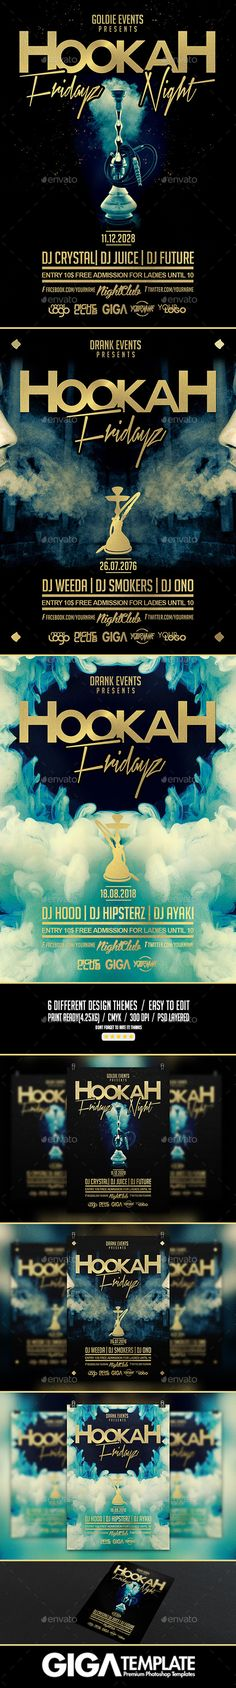 Hookah Fridayz Night | Party PSD Flyer Template (CS, 4.25x6, abstract, arabian, arabic, bar, birthday, bundle, celebration, chicha, club, cocktails, deejay, drink, event, hip hop, hookah, hookah bundle, indian, Kush, lounge, minimalist, music flyer, muslim, narguile, oriental, smoke, sound party, style, template, tobacco, urban)